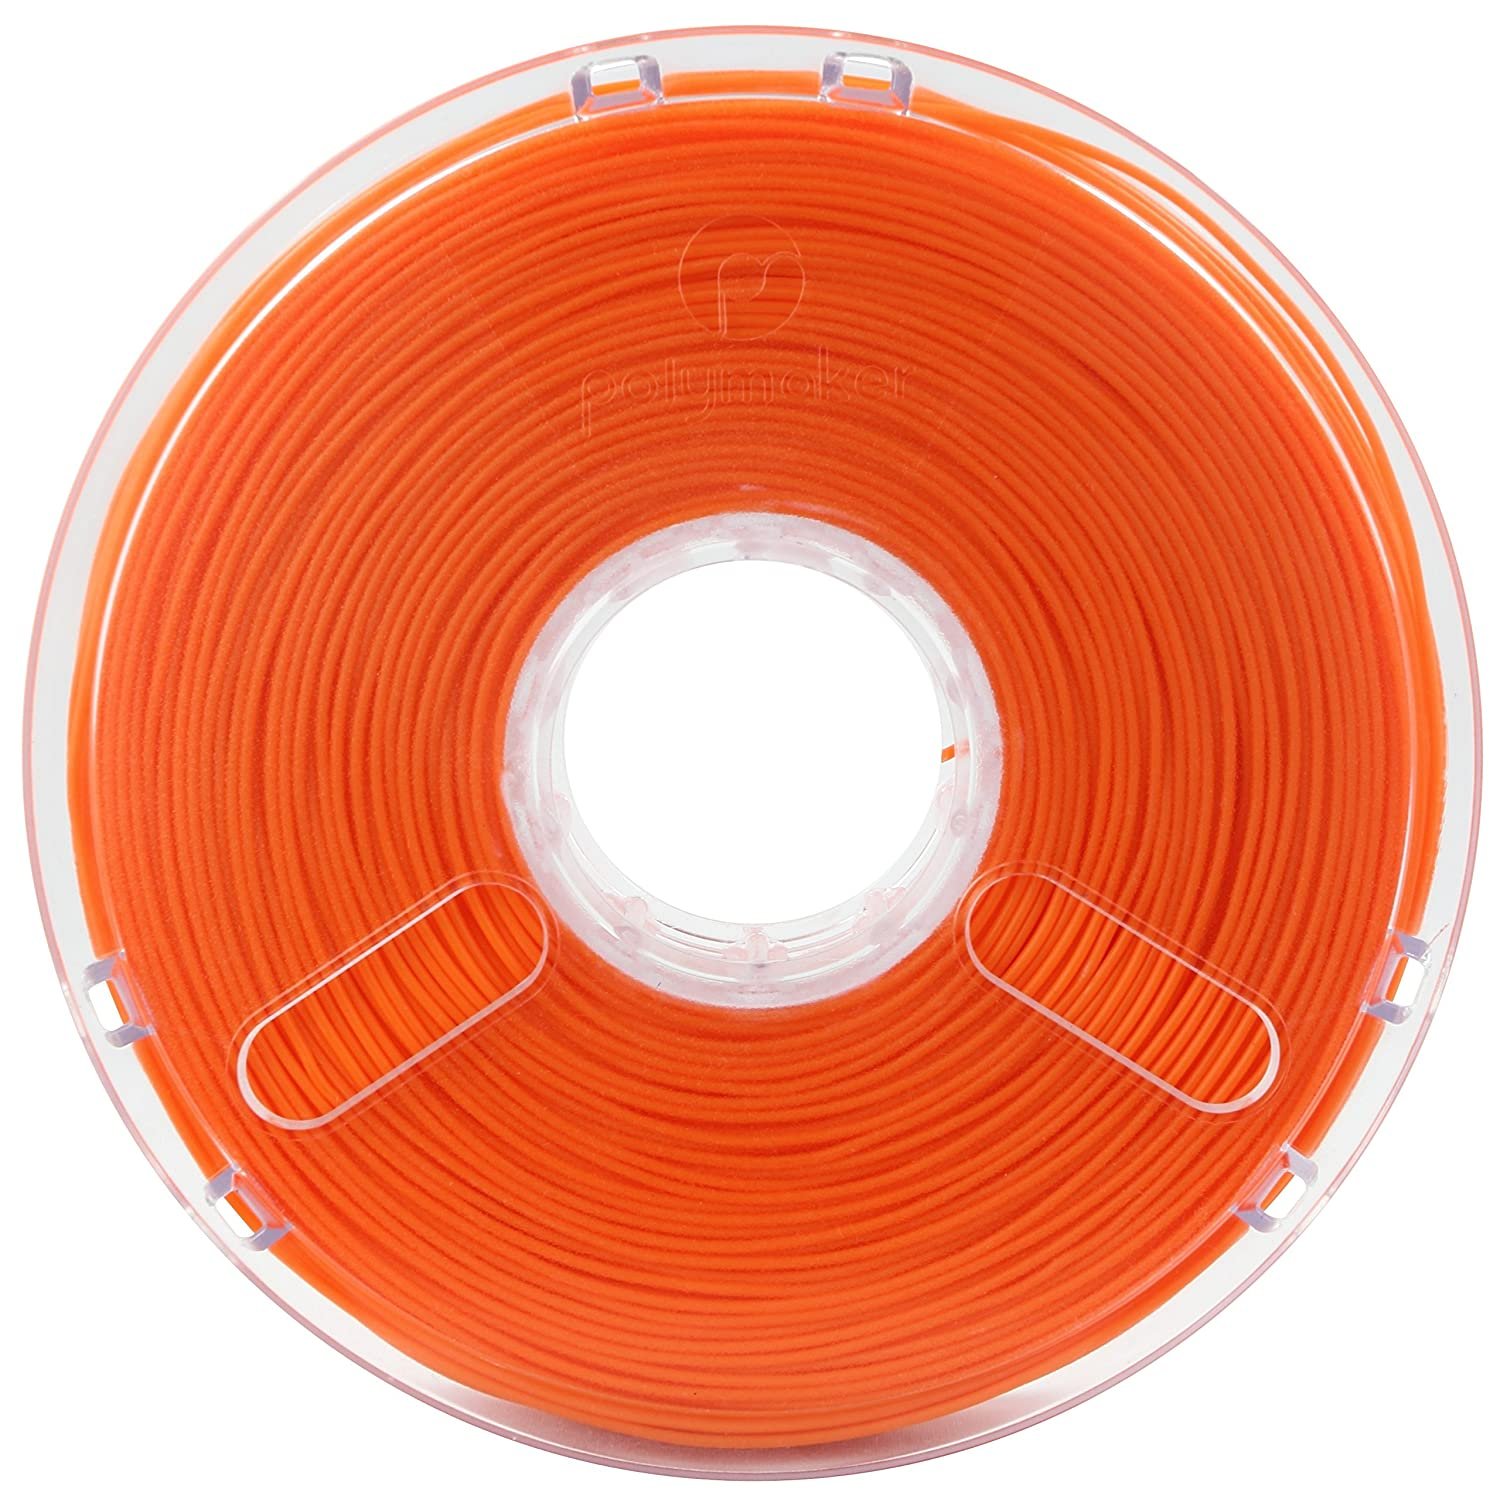 BuildTak PM70108 PolyFlex - Filamento flexible (0,75 kg, 1,75 mm ...